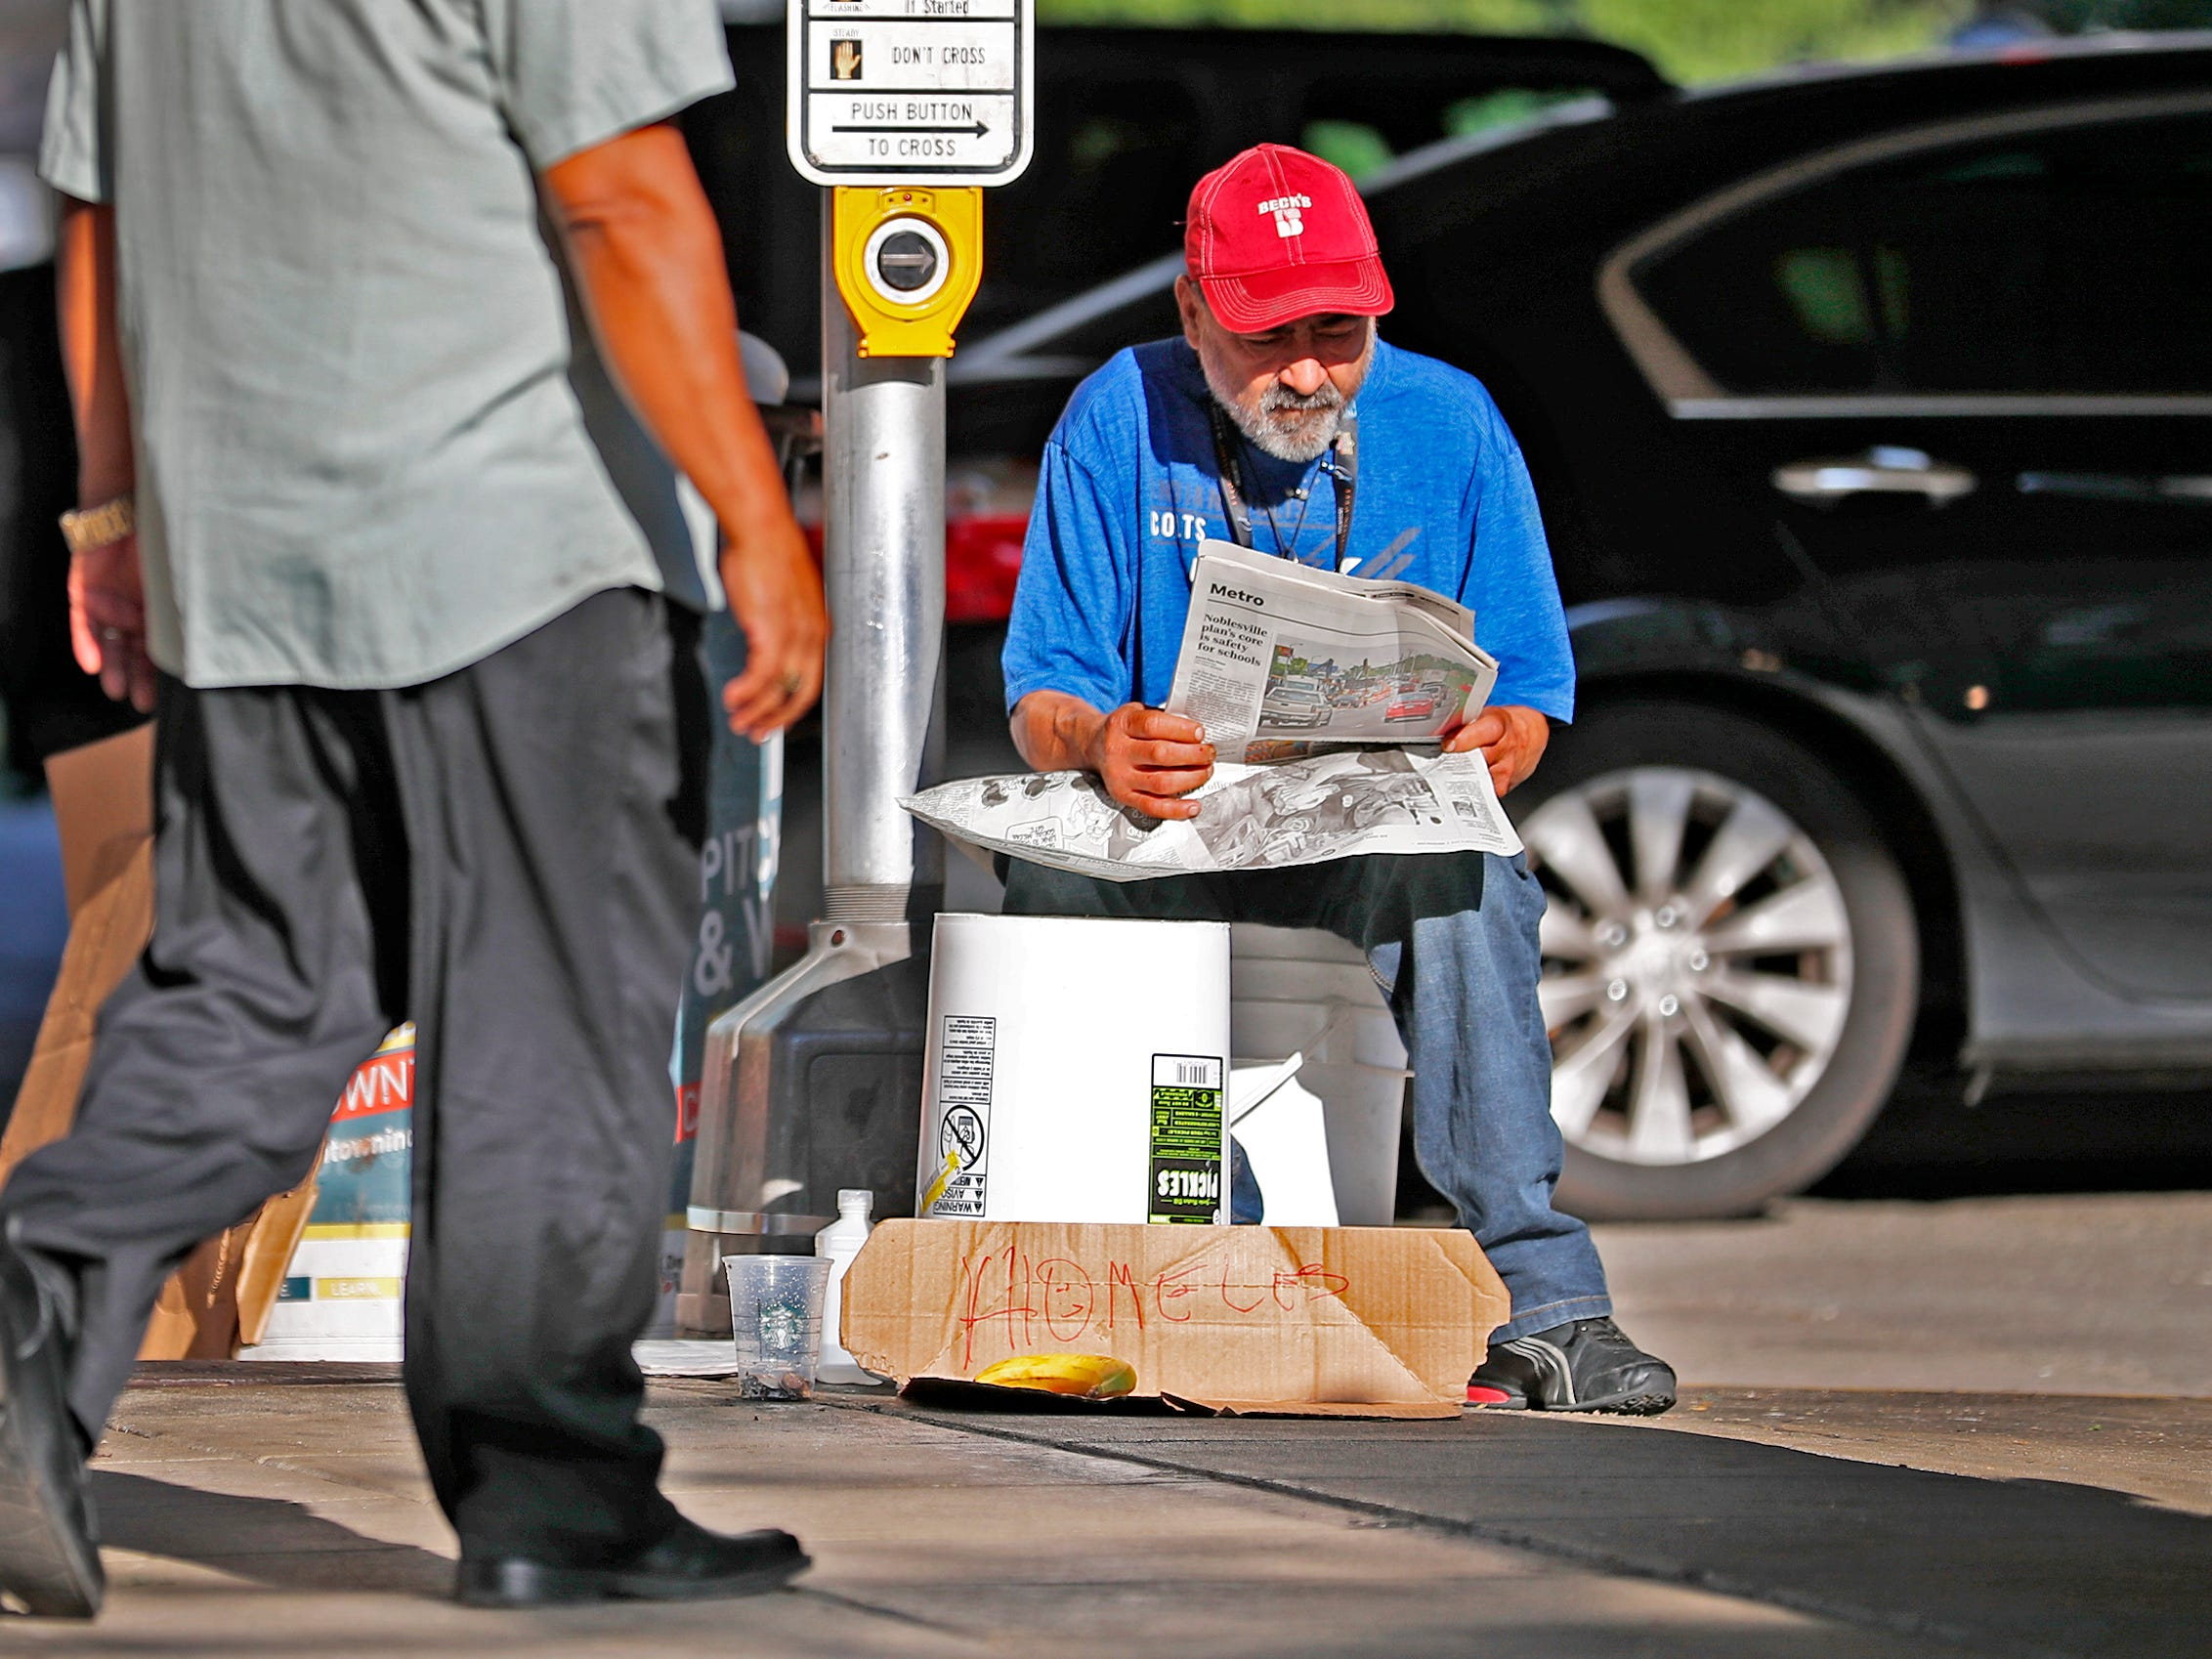 Roberto Green, a homeless man, reads the newspaper while he waits for handouts in downtown Indianapolis, Thursday, Aug. 9, 2018.  He says he is waiting for disability.  Coalition for Homelessness Intervention & Prevention (CHIP) and the city of Indianapolis have proposed a plan to end homelessness in the city by 2023.